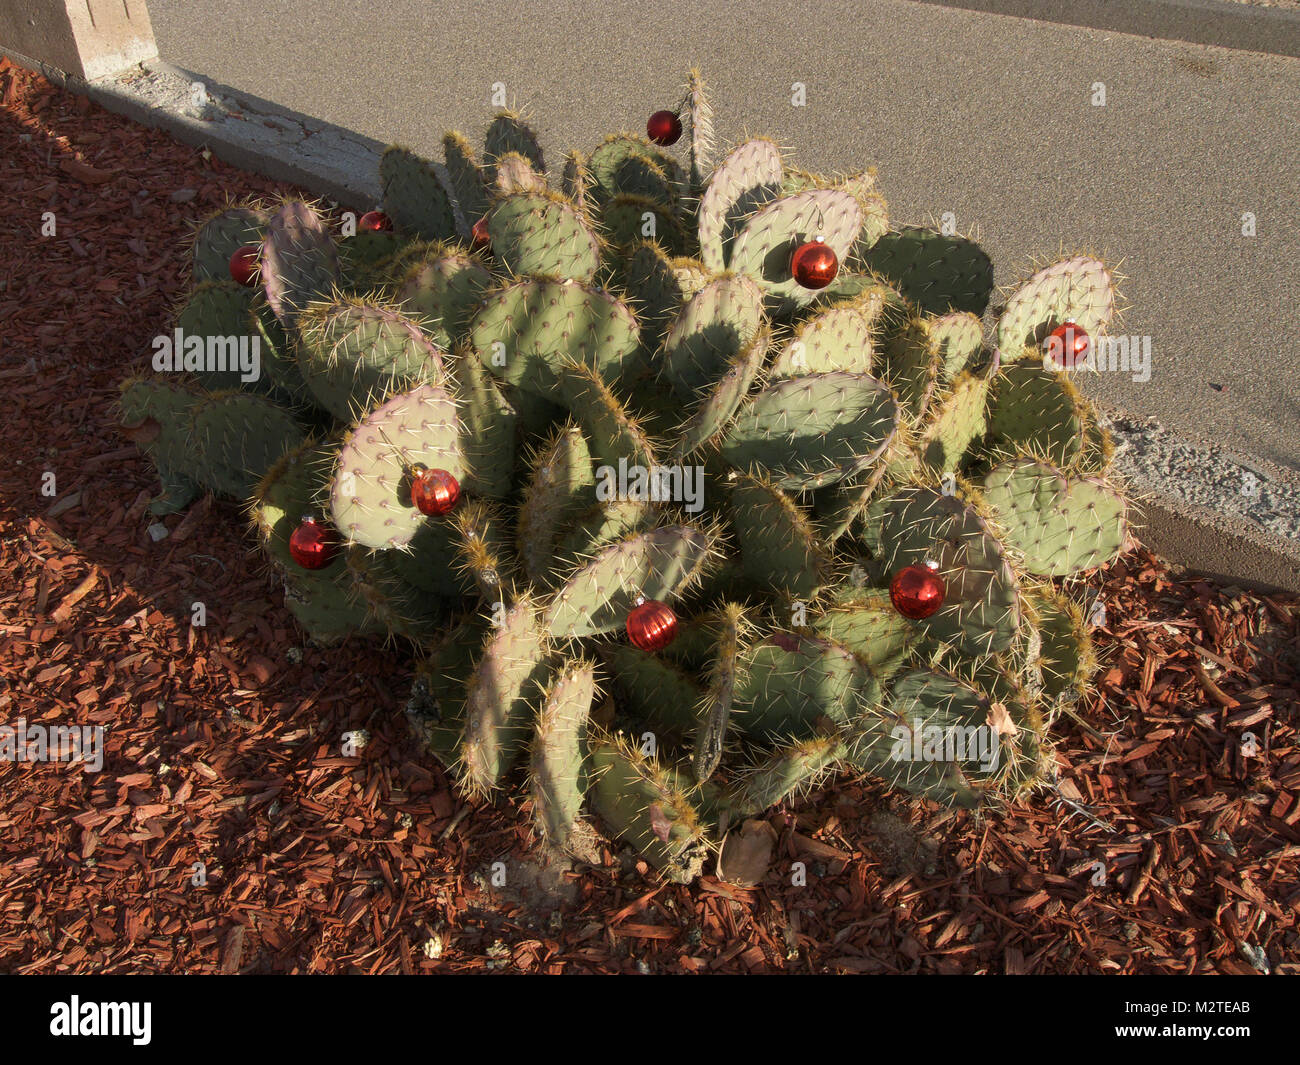 Prickly Pear cactus with X-mas ornaments - Stock Image